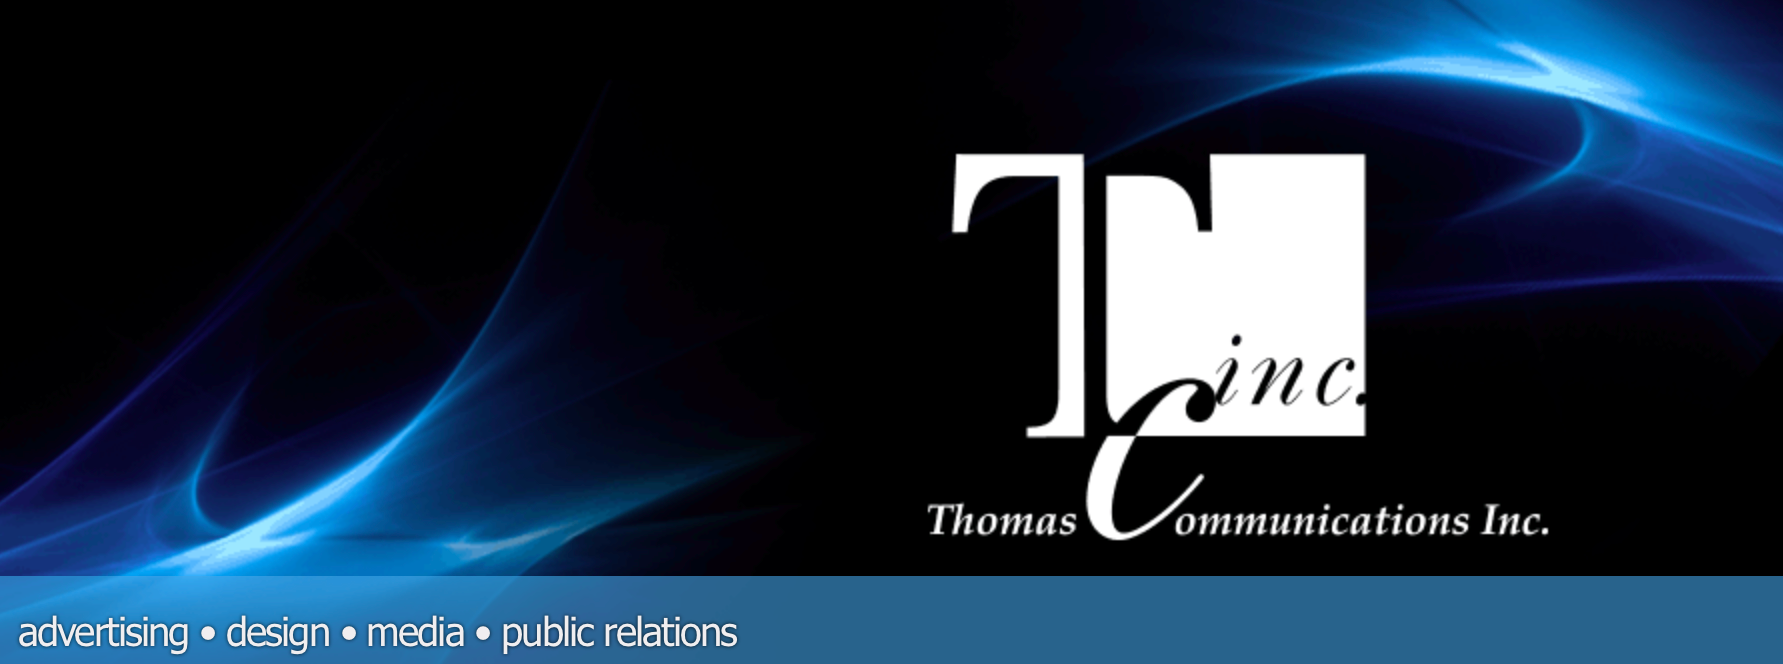 Thomas Communications, Inc.